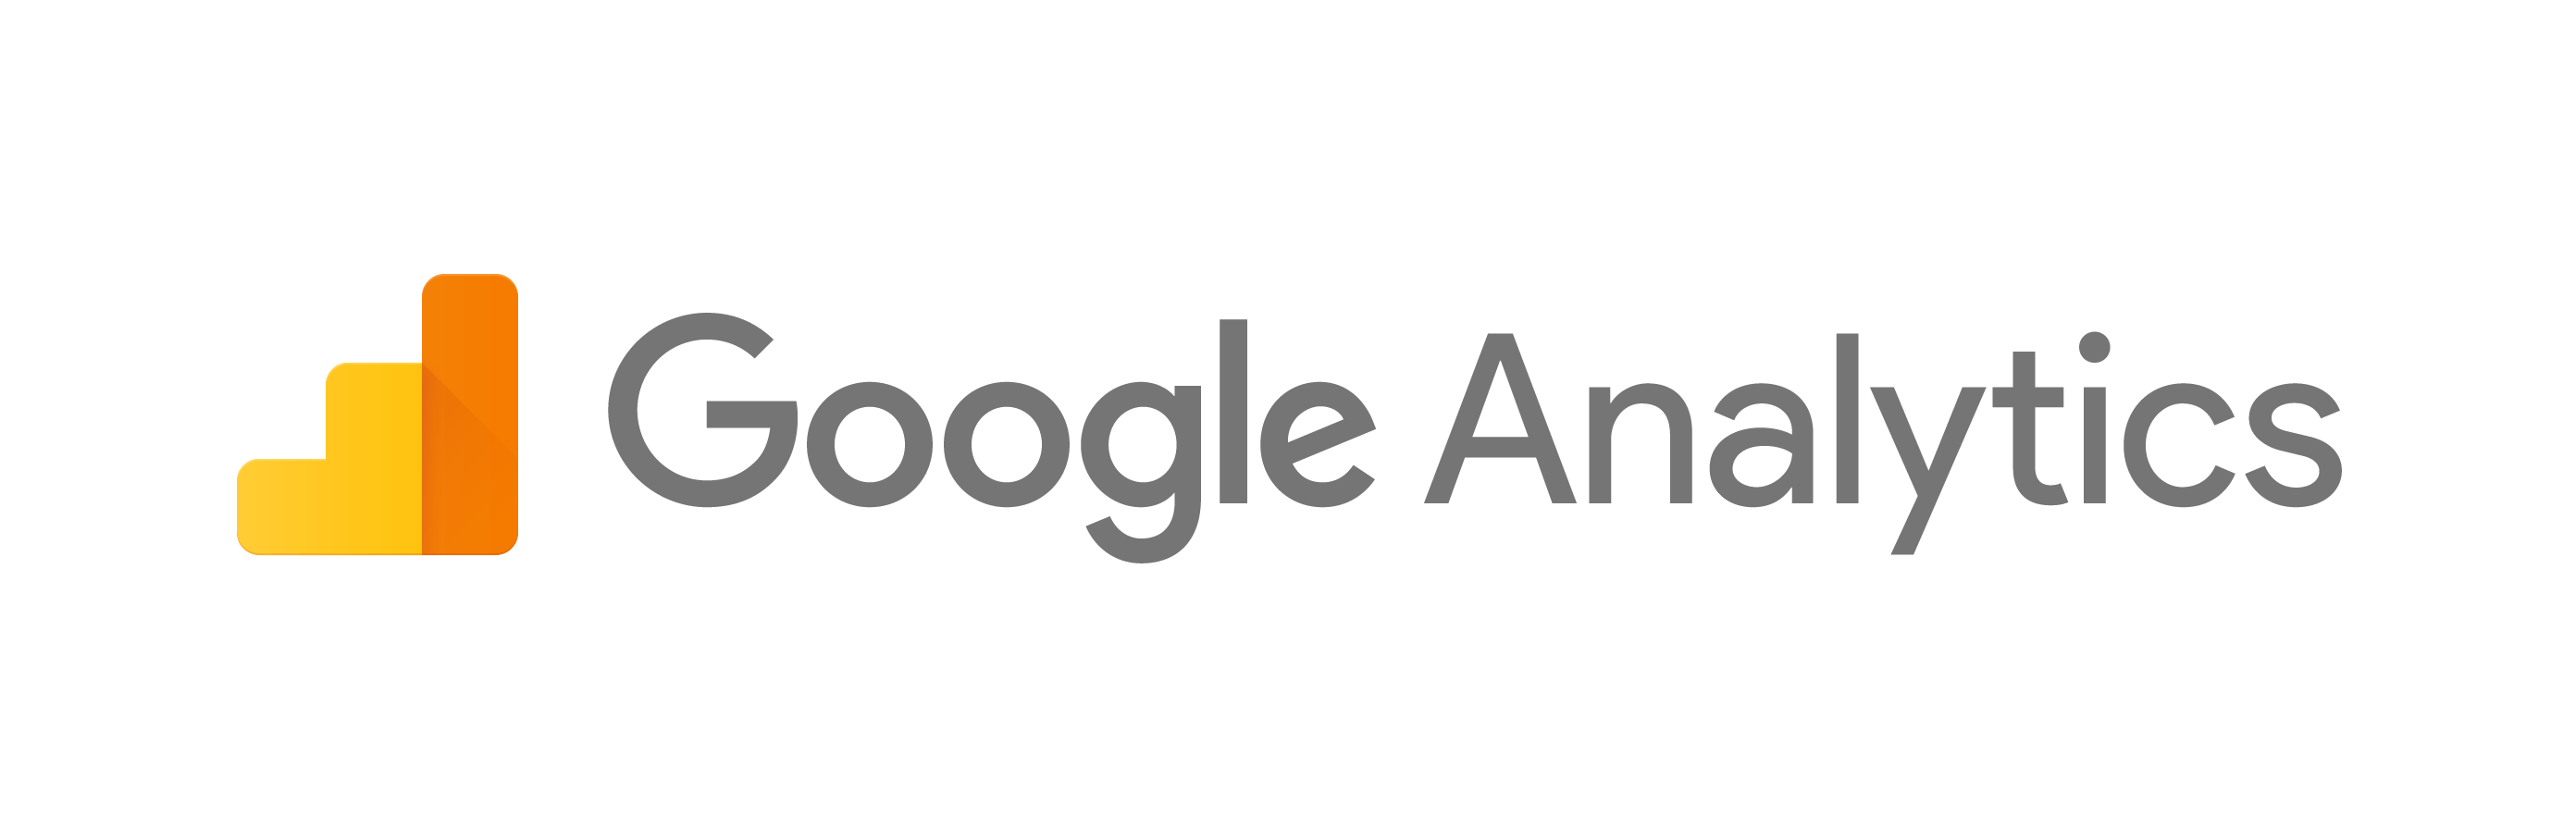 Google analytics png. How to use improve